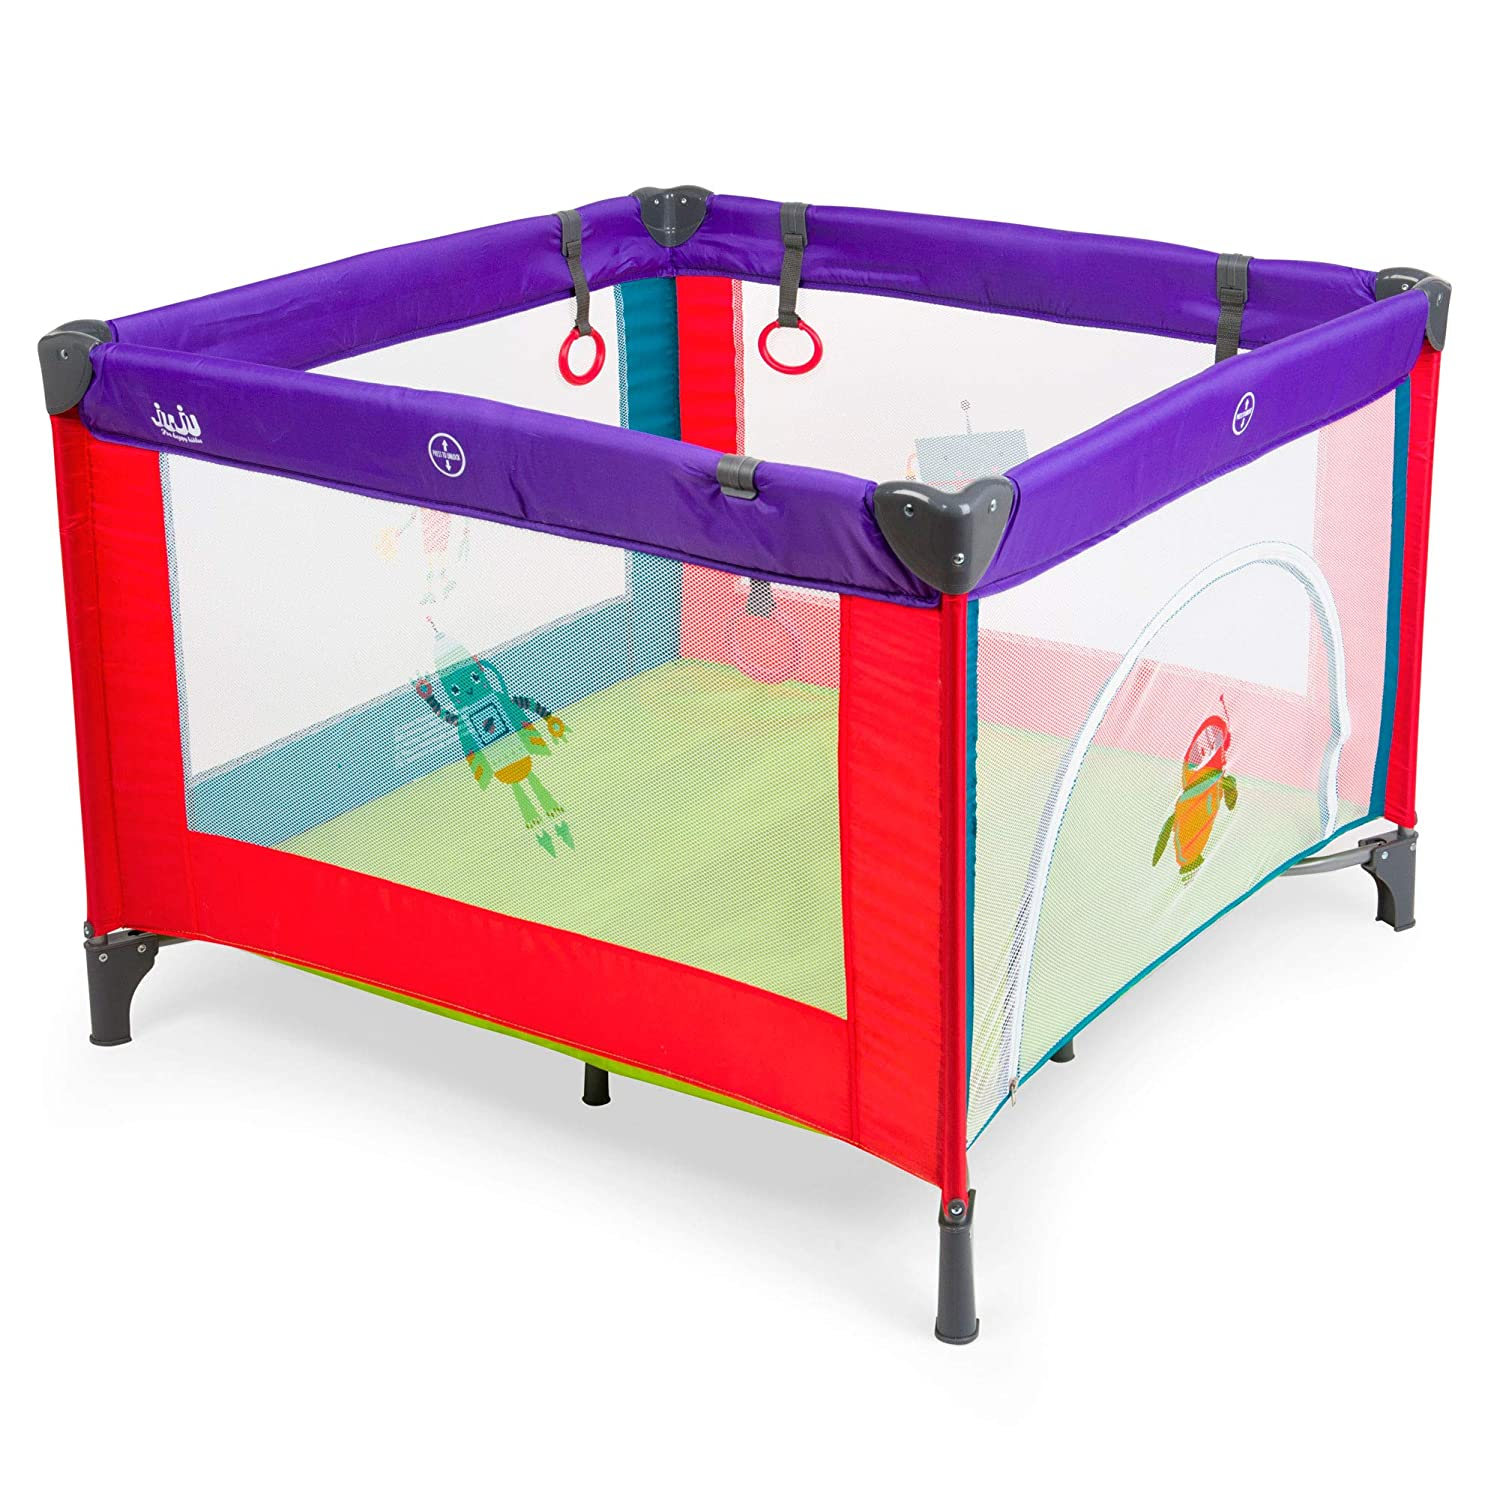 Juju Discovery Space Robo Playpen, Multicoloured Dot Com Investment SRL